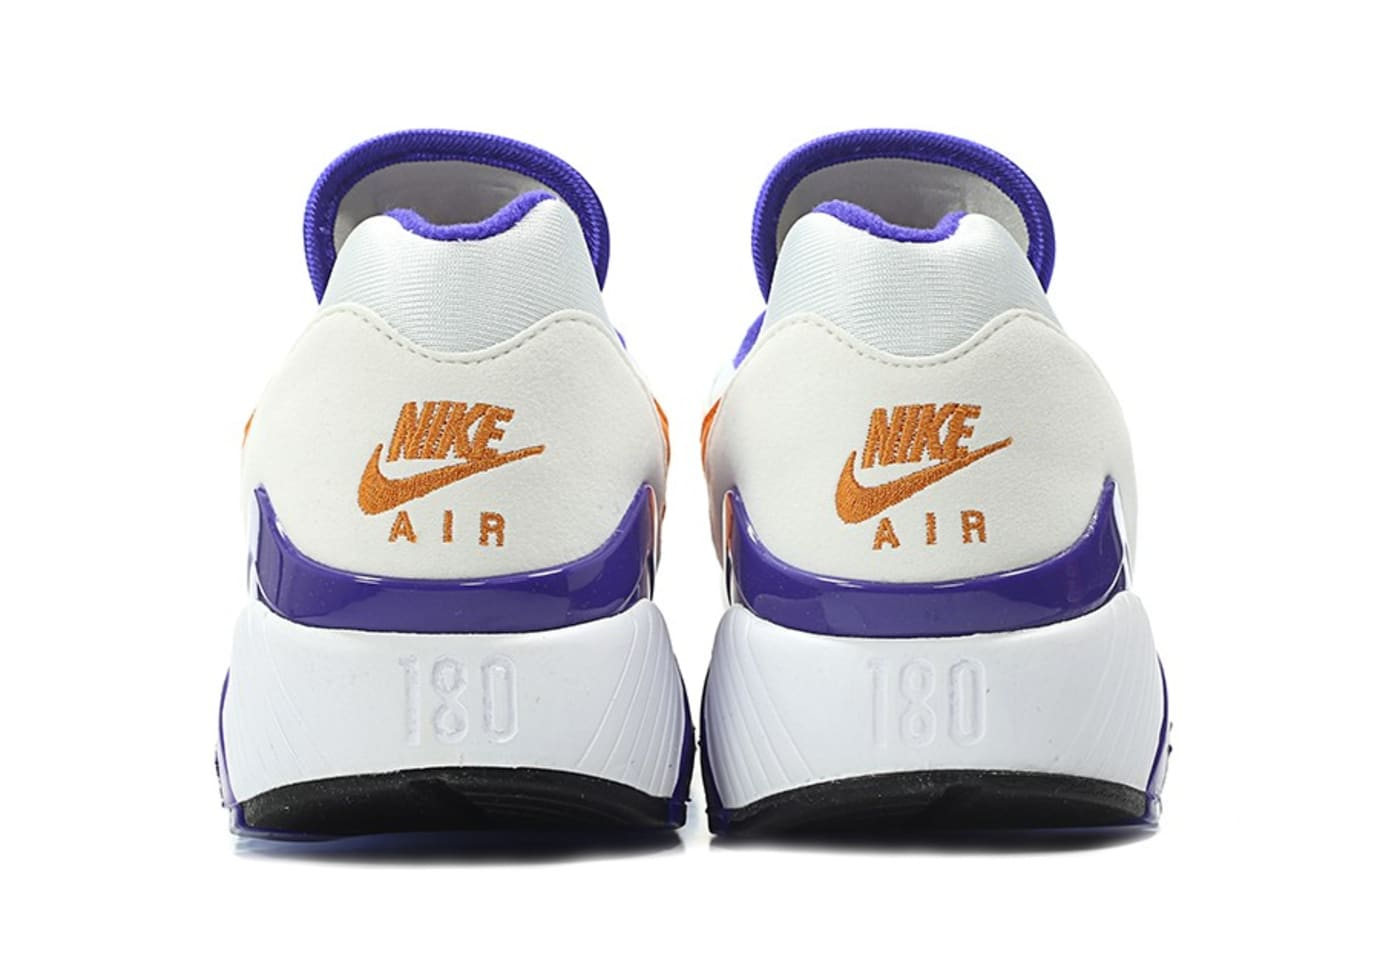 check out 5e579 ce0c4 ... Nike Air Max 180 OG WhiteBright Ceramic-Dark Concord 615287-101 (